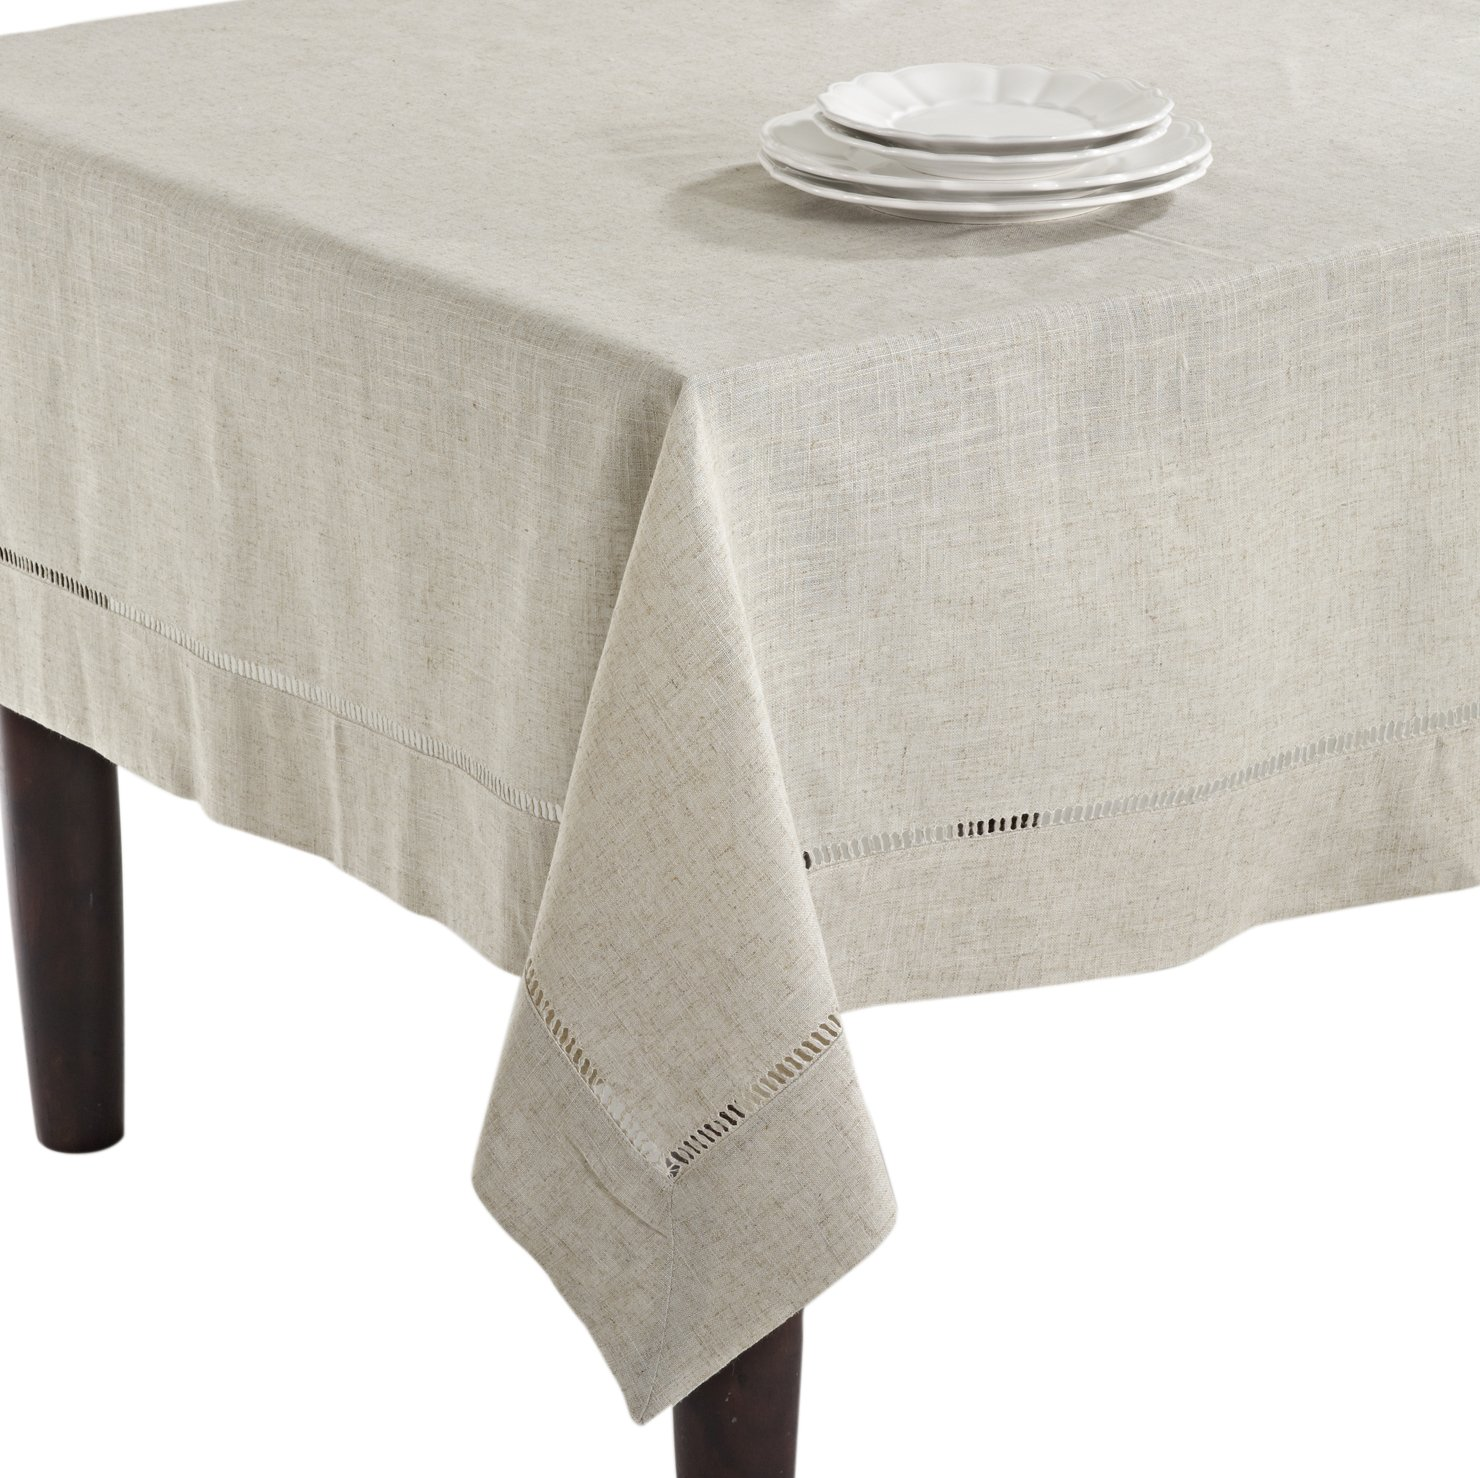 96 inch round tablecloth - N96r Toscana Tablecloths 96 Inch Round Natural Home Kitchen